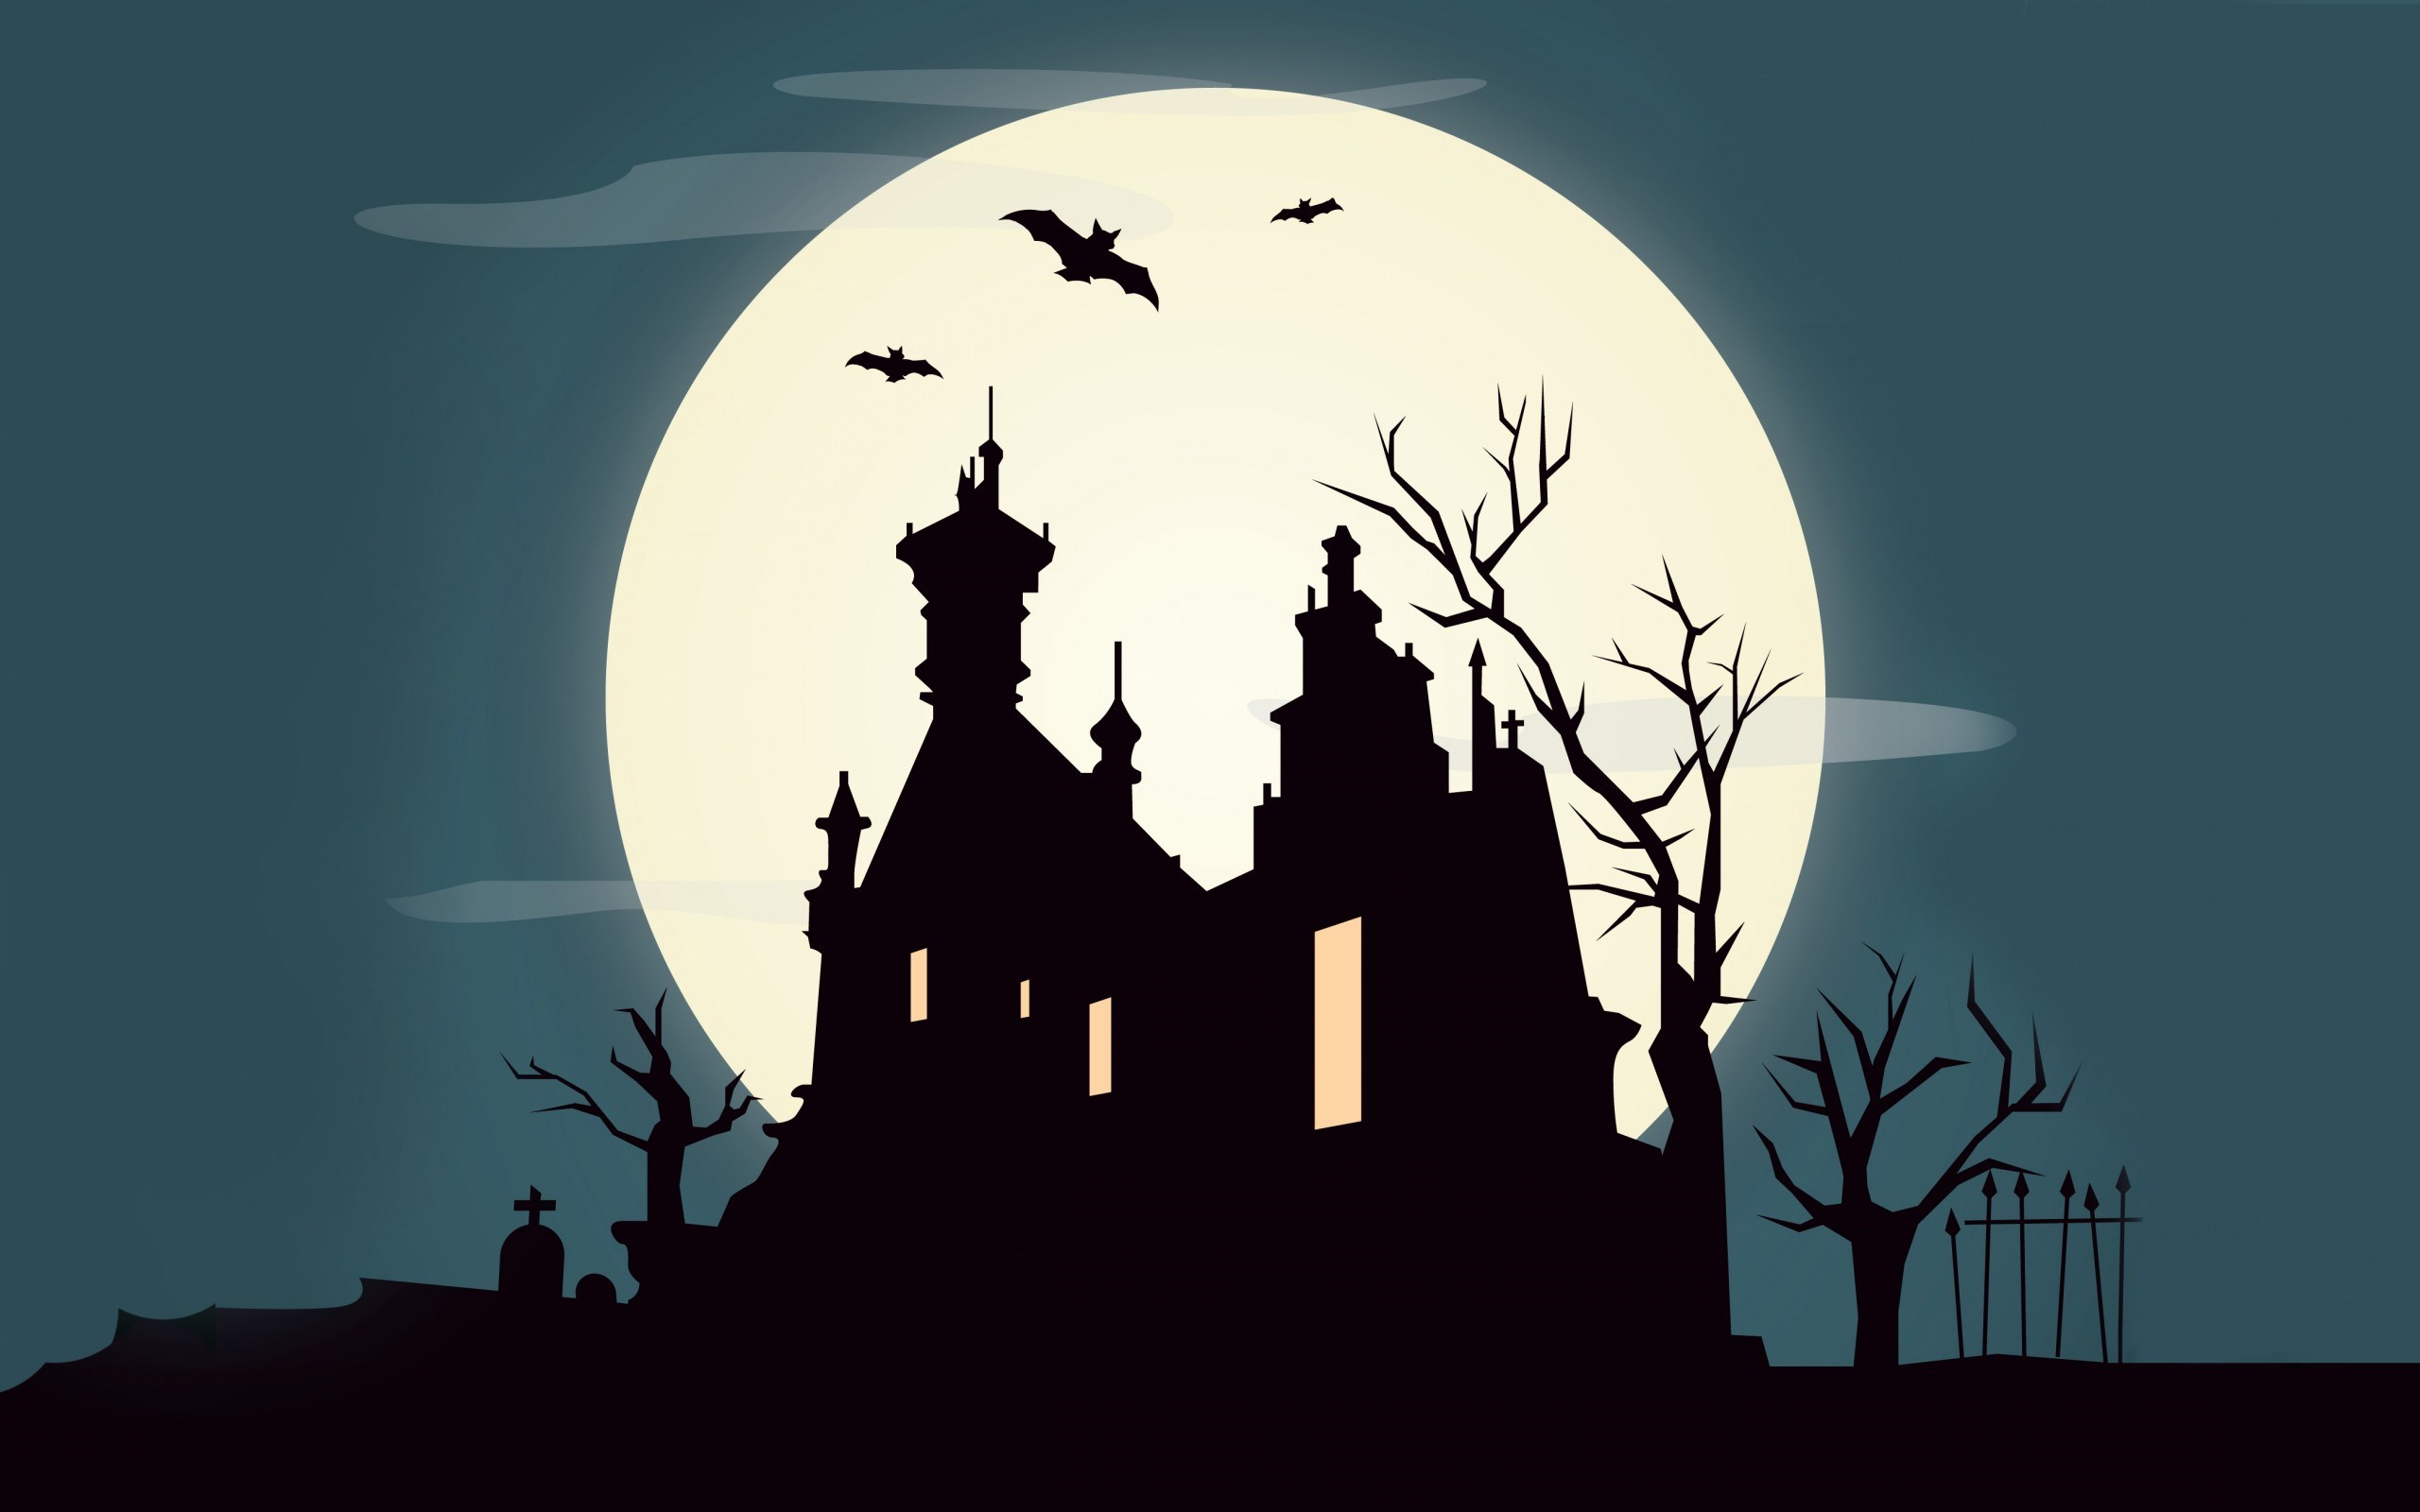 Holiday Halloween October Full Moon Castle Bats